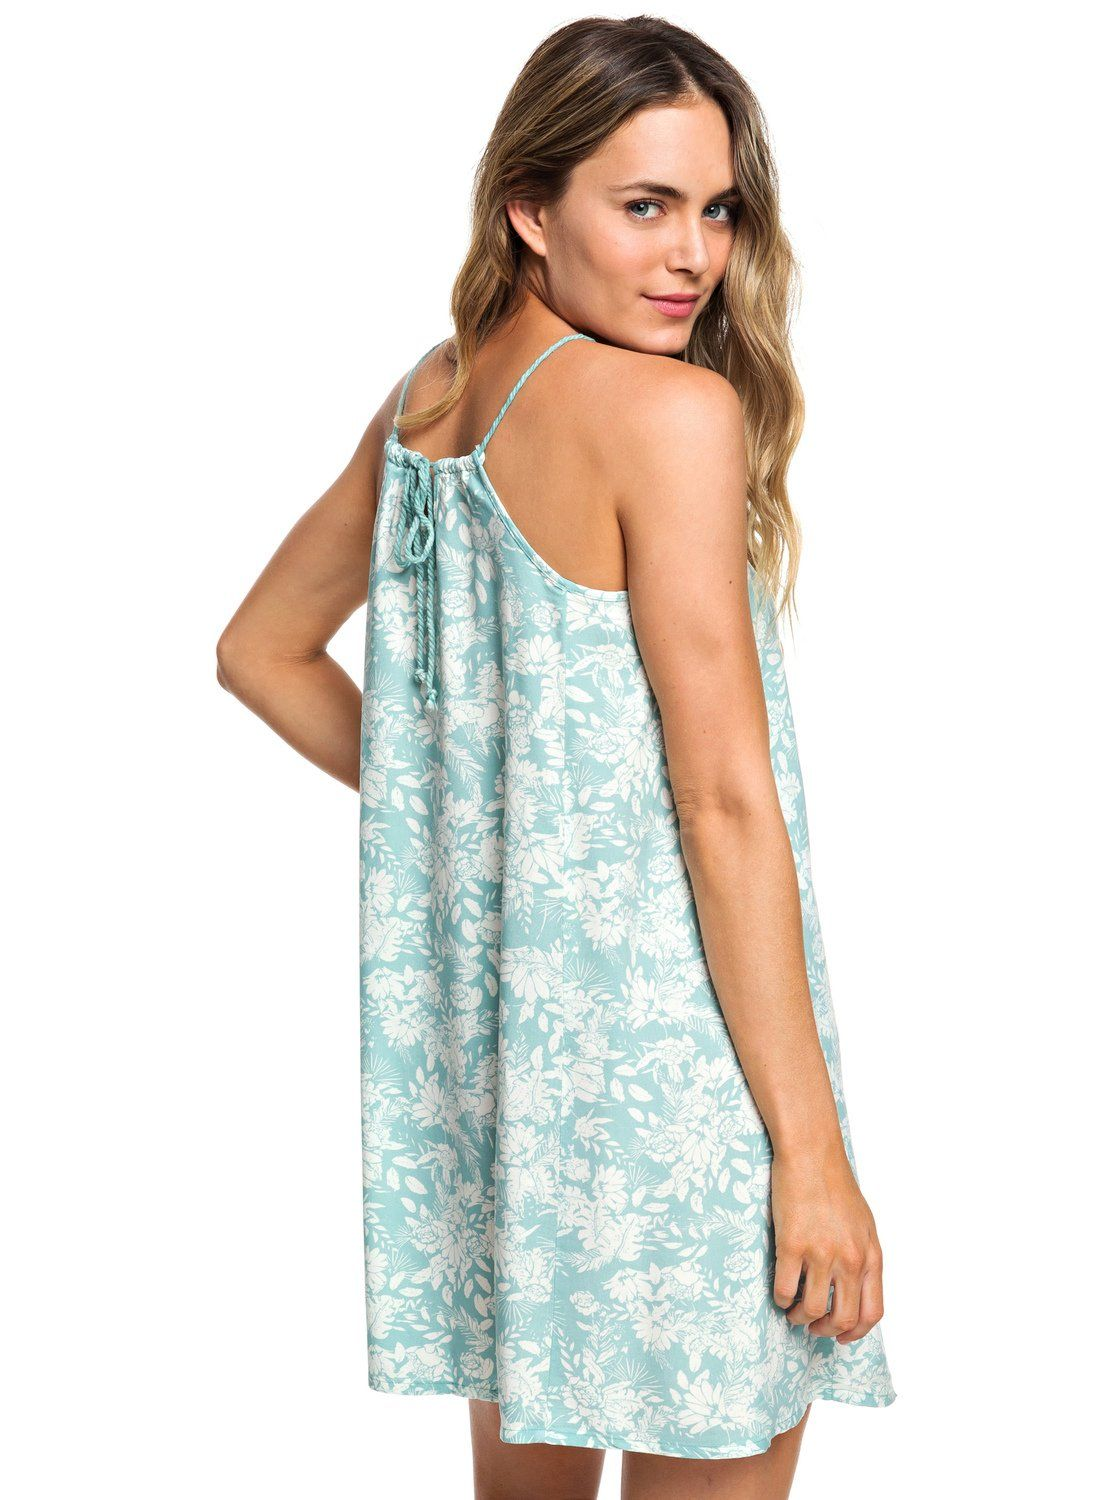 All About Queens Strappy Dress Erjwd03292 Roxy Strappy Dresses Dresses Summer Dresses [ 1500 x 1117 Pixel ]